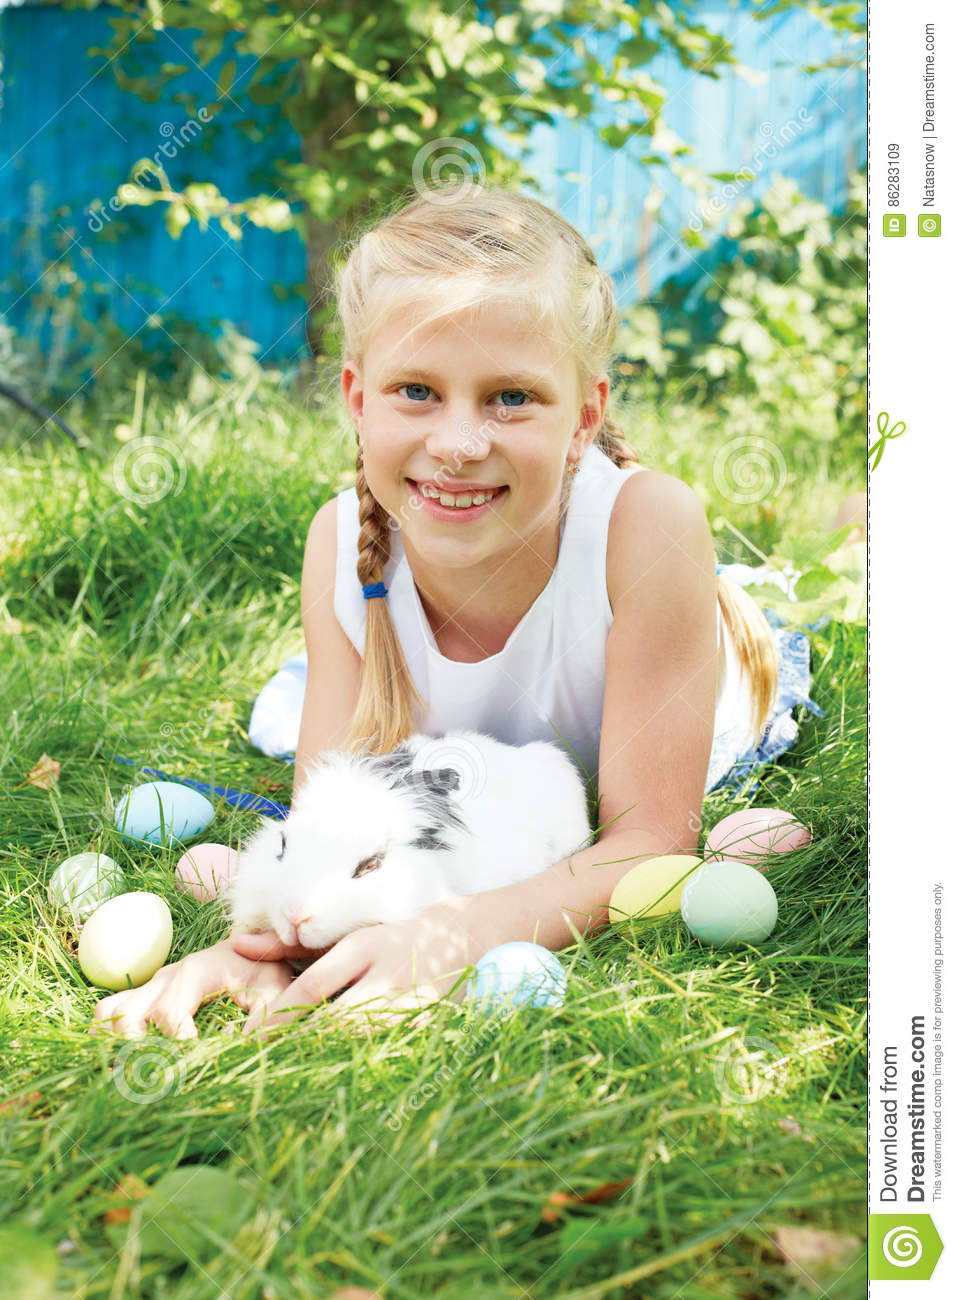 Child hunted on Easter egg in blooming spring garden.